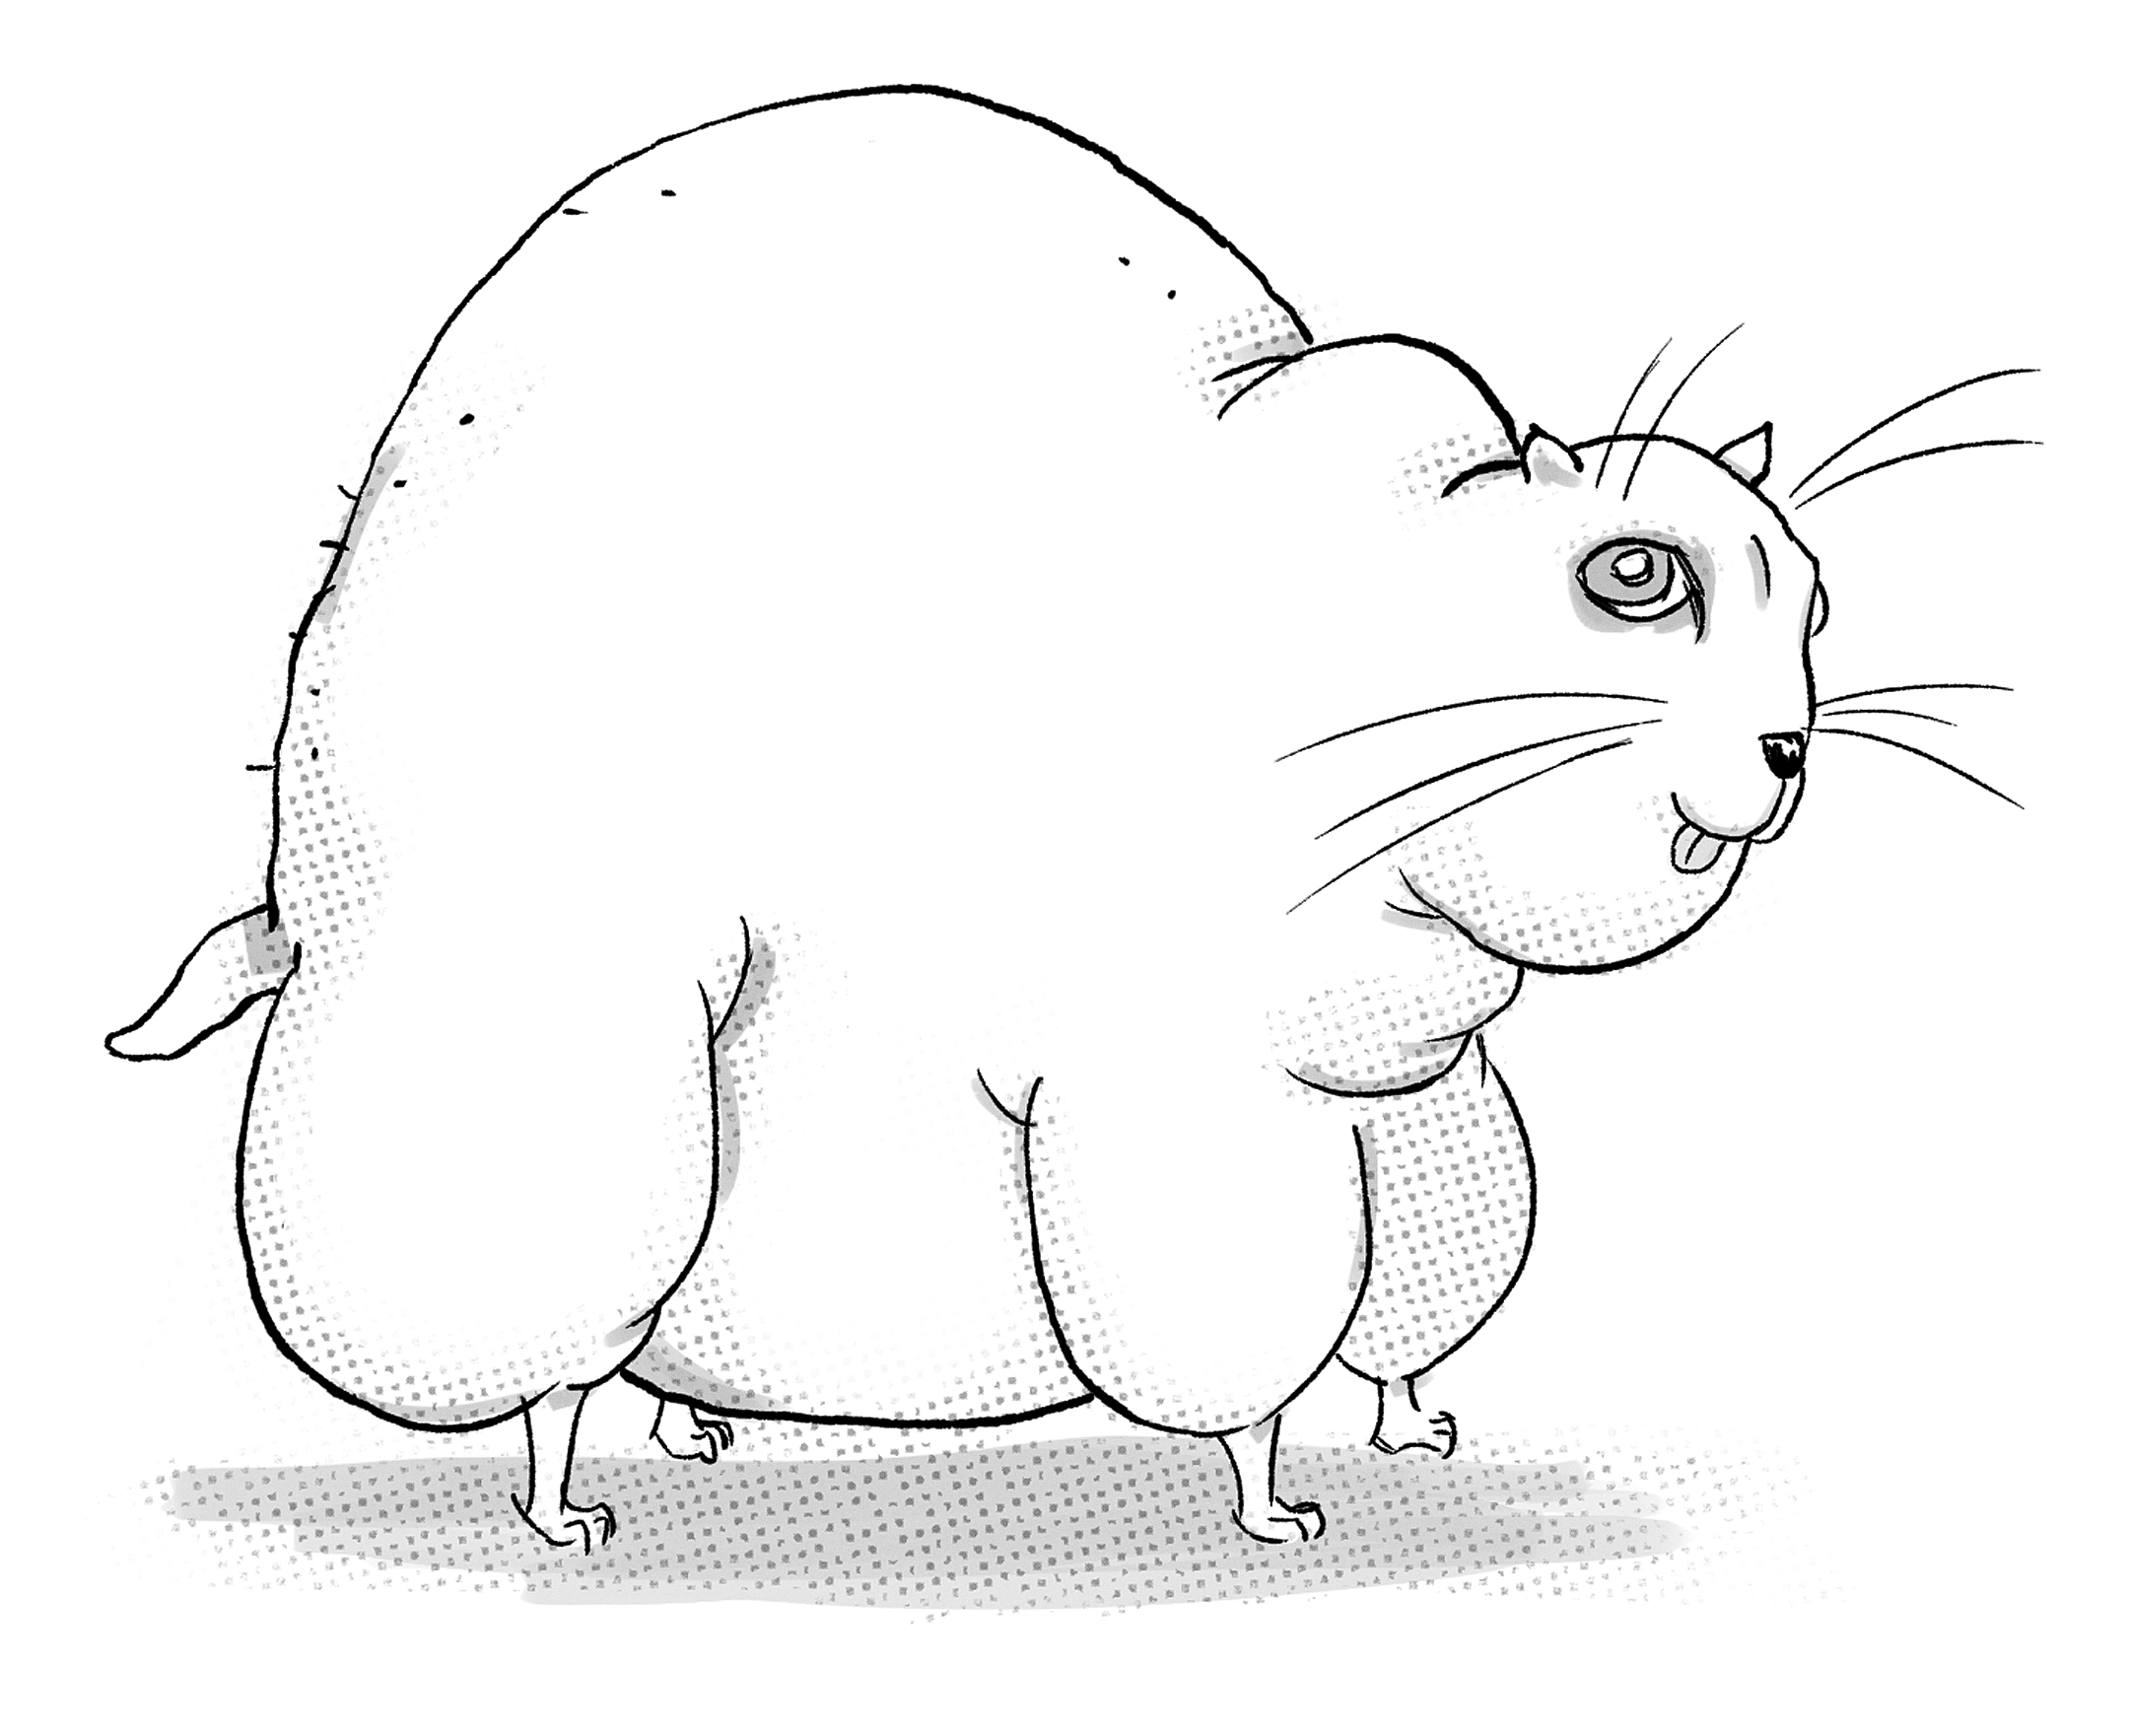 john-bergin-fat-cat.jpg